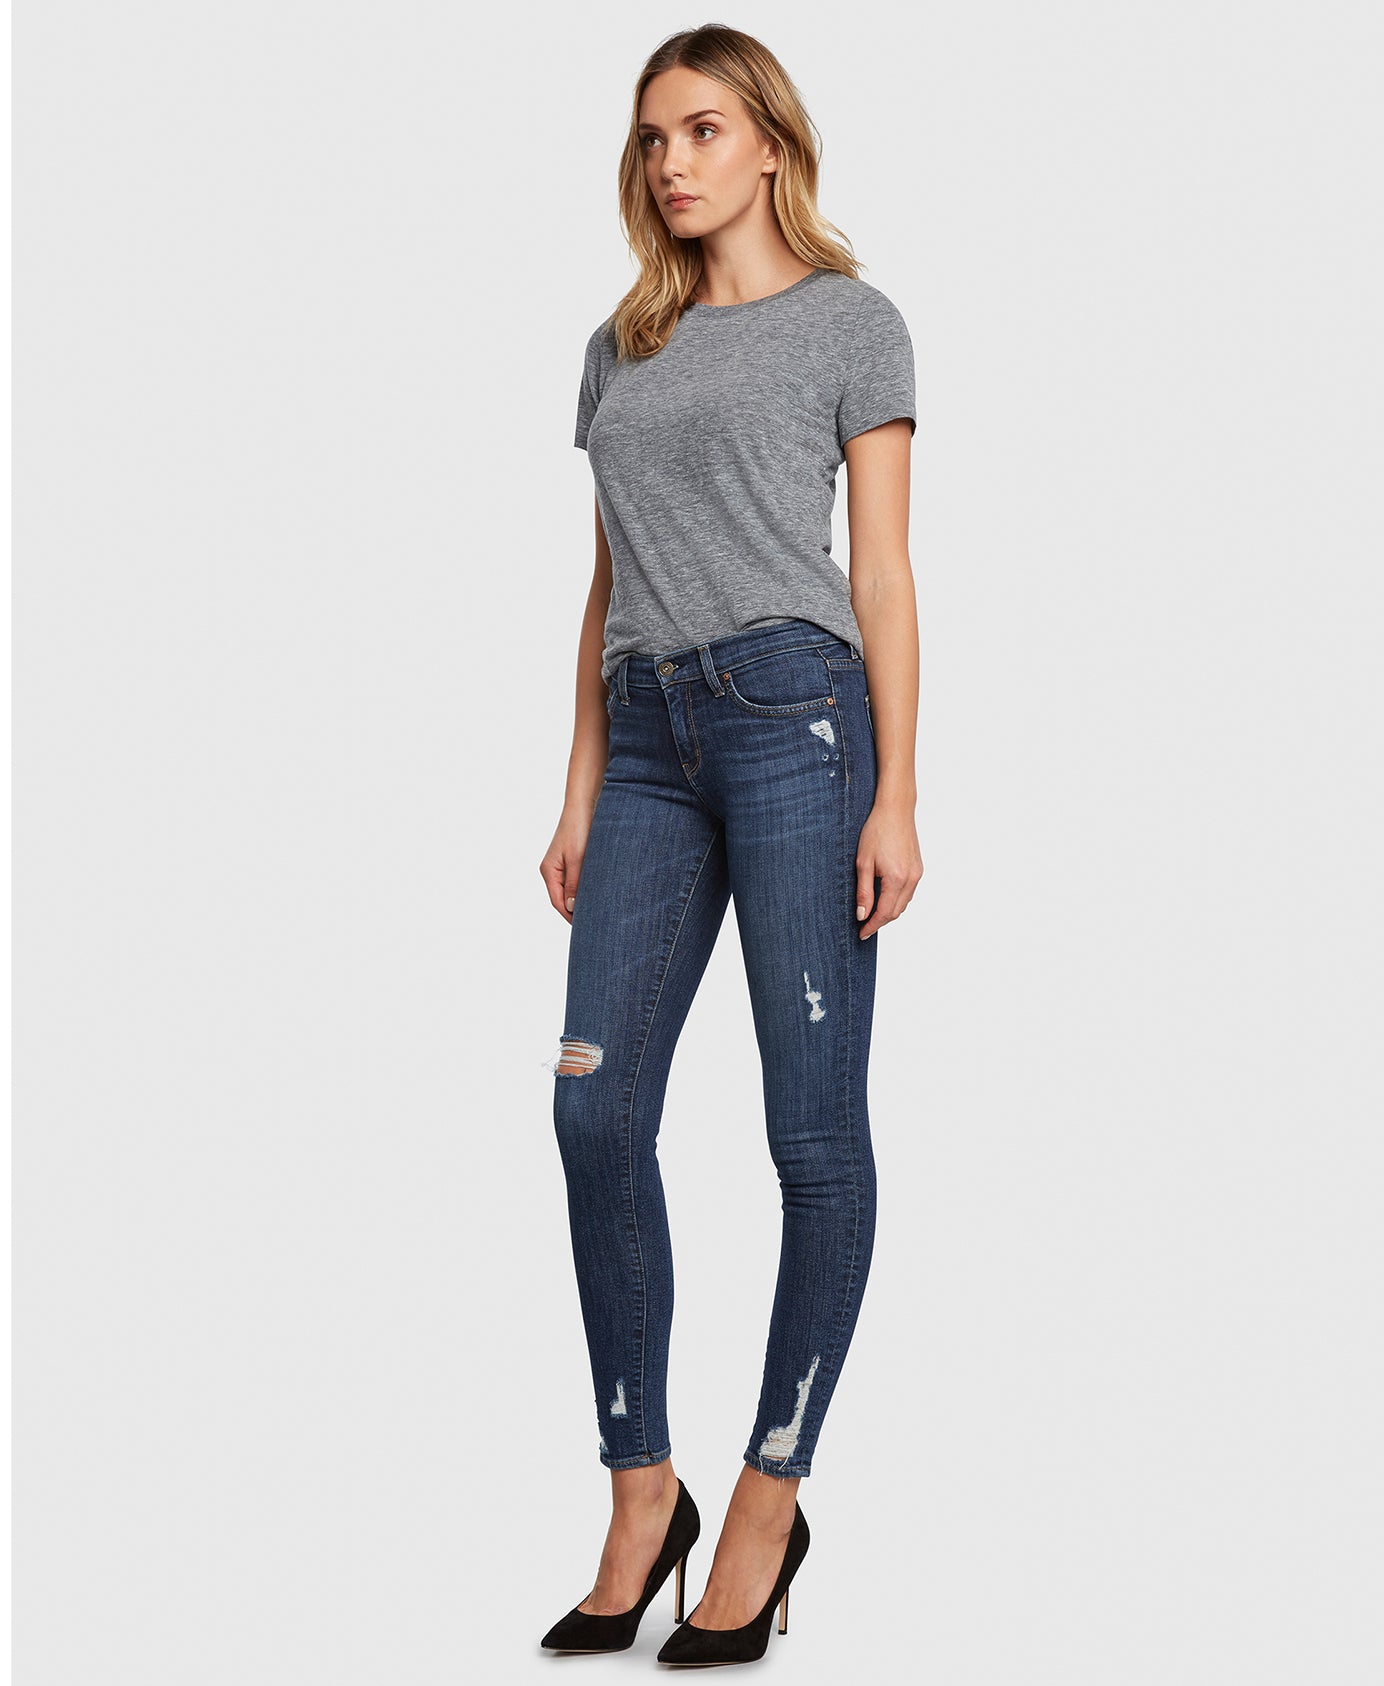 Principle DREAMER in Fastlane skinny jeans with holes side